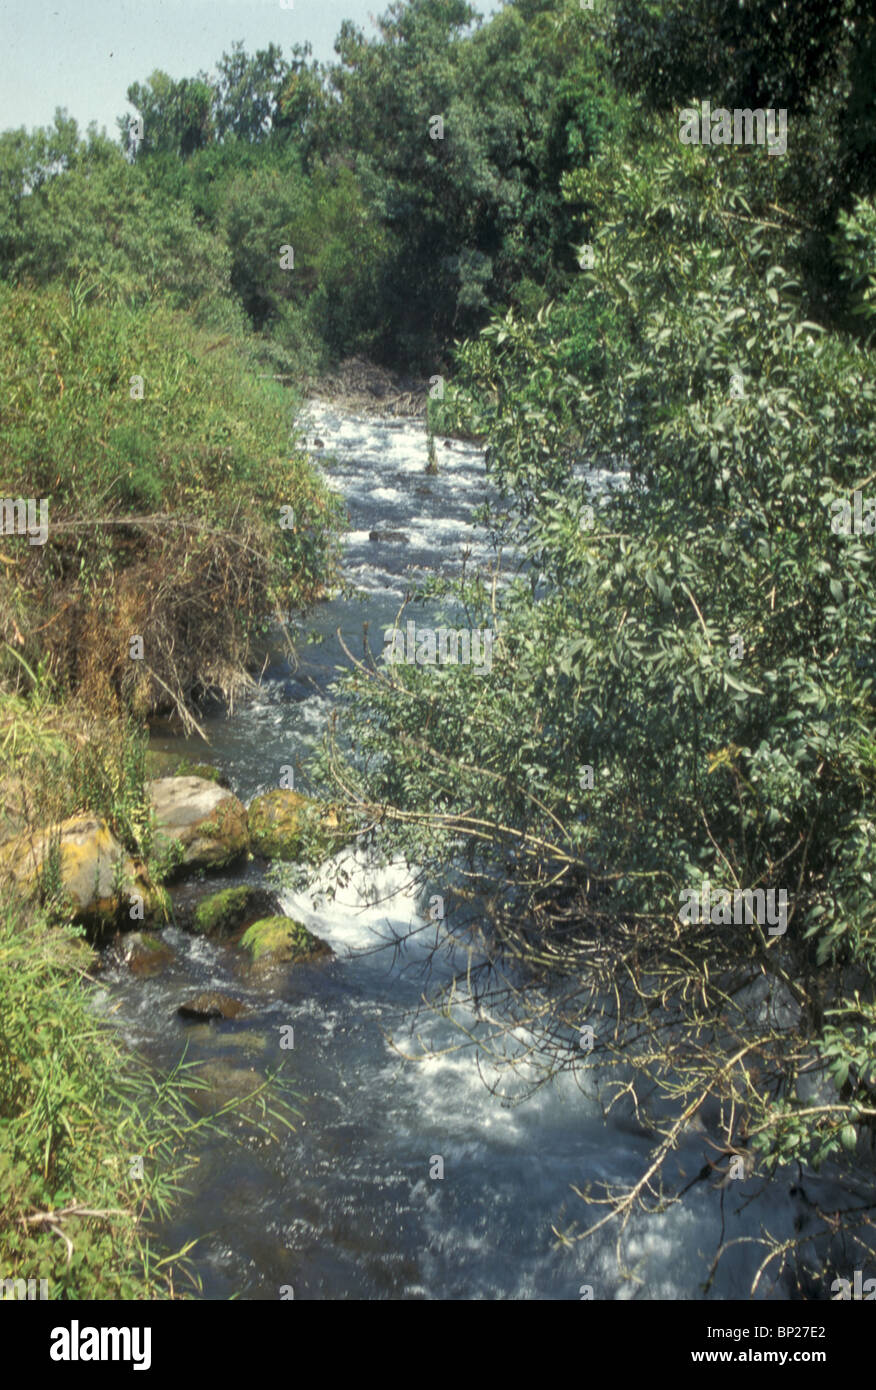 1694. THE DAN IN NORTHERN GALILEE, ONE OF THE TRIBUTARYS OF THE RIVER JORDAN - Stock Image